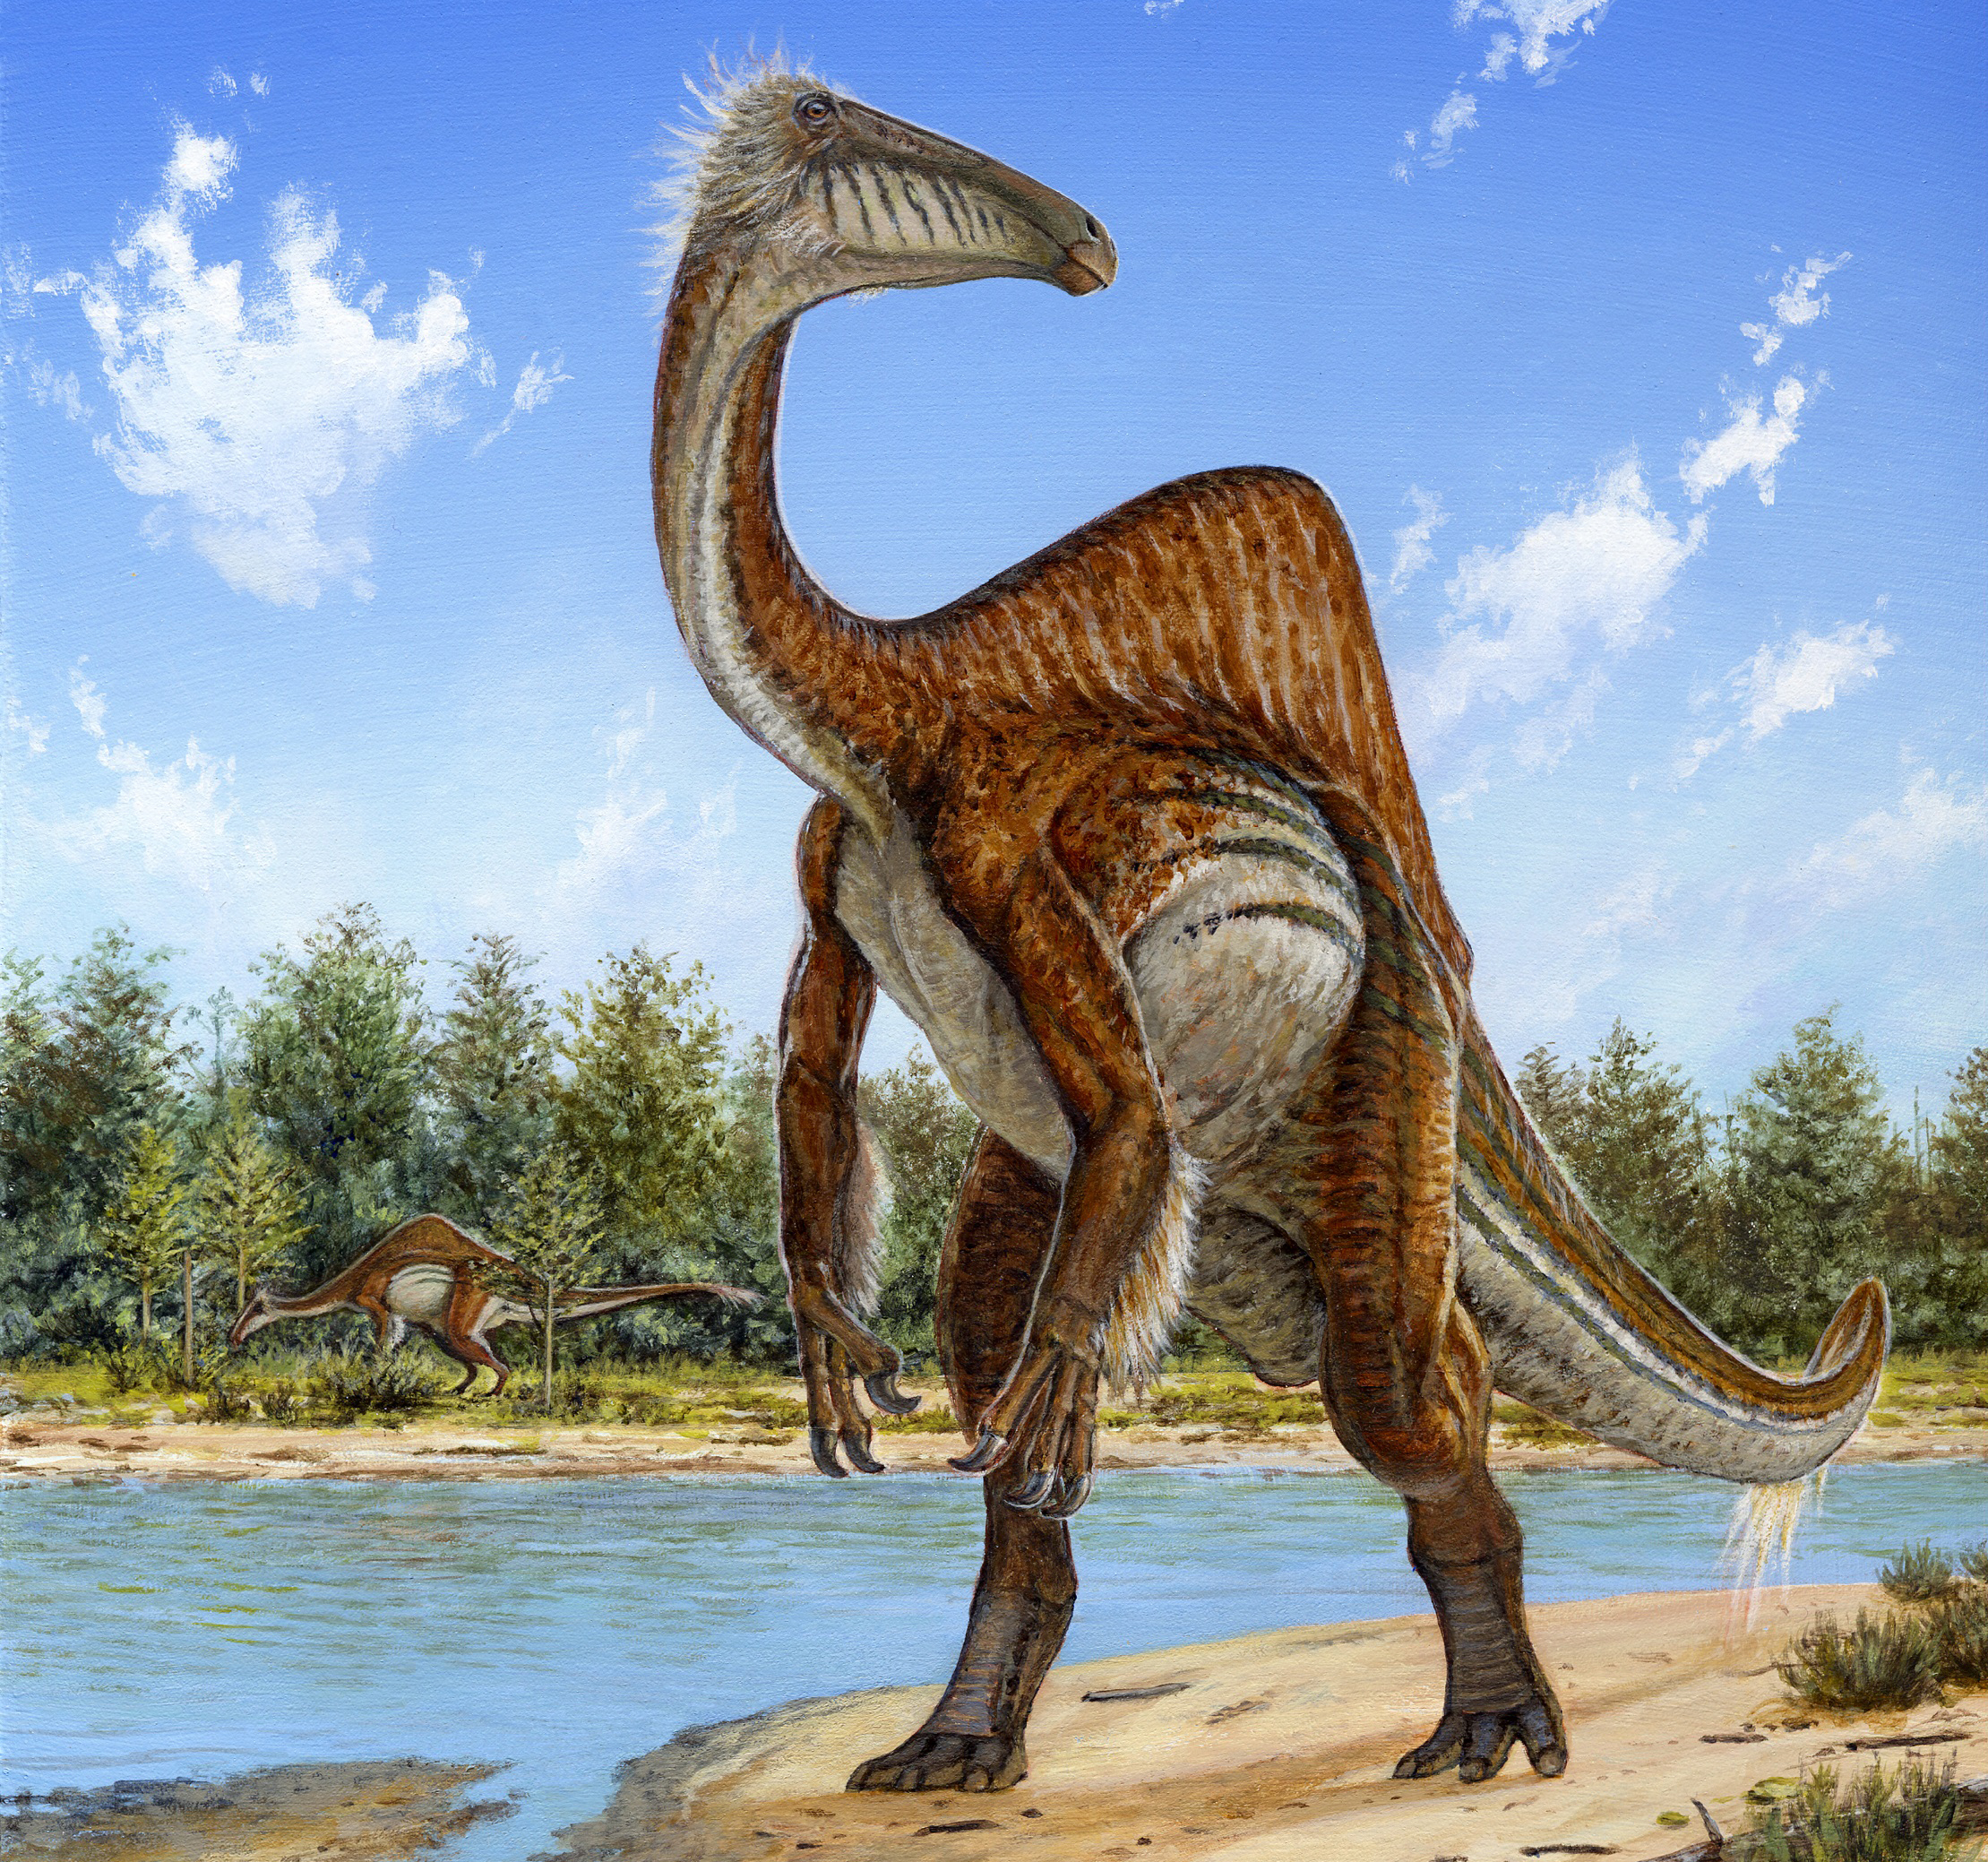 This undated handout image provided by Michael Skrepnick, Dinosaurs in Art, Nature Publishing Group, shows a deinocheirus